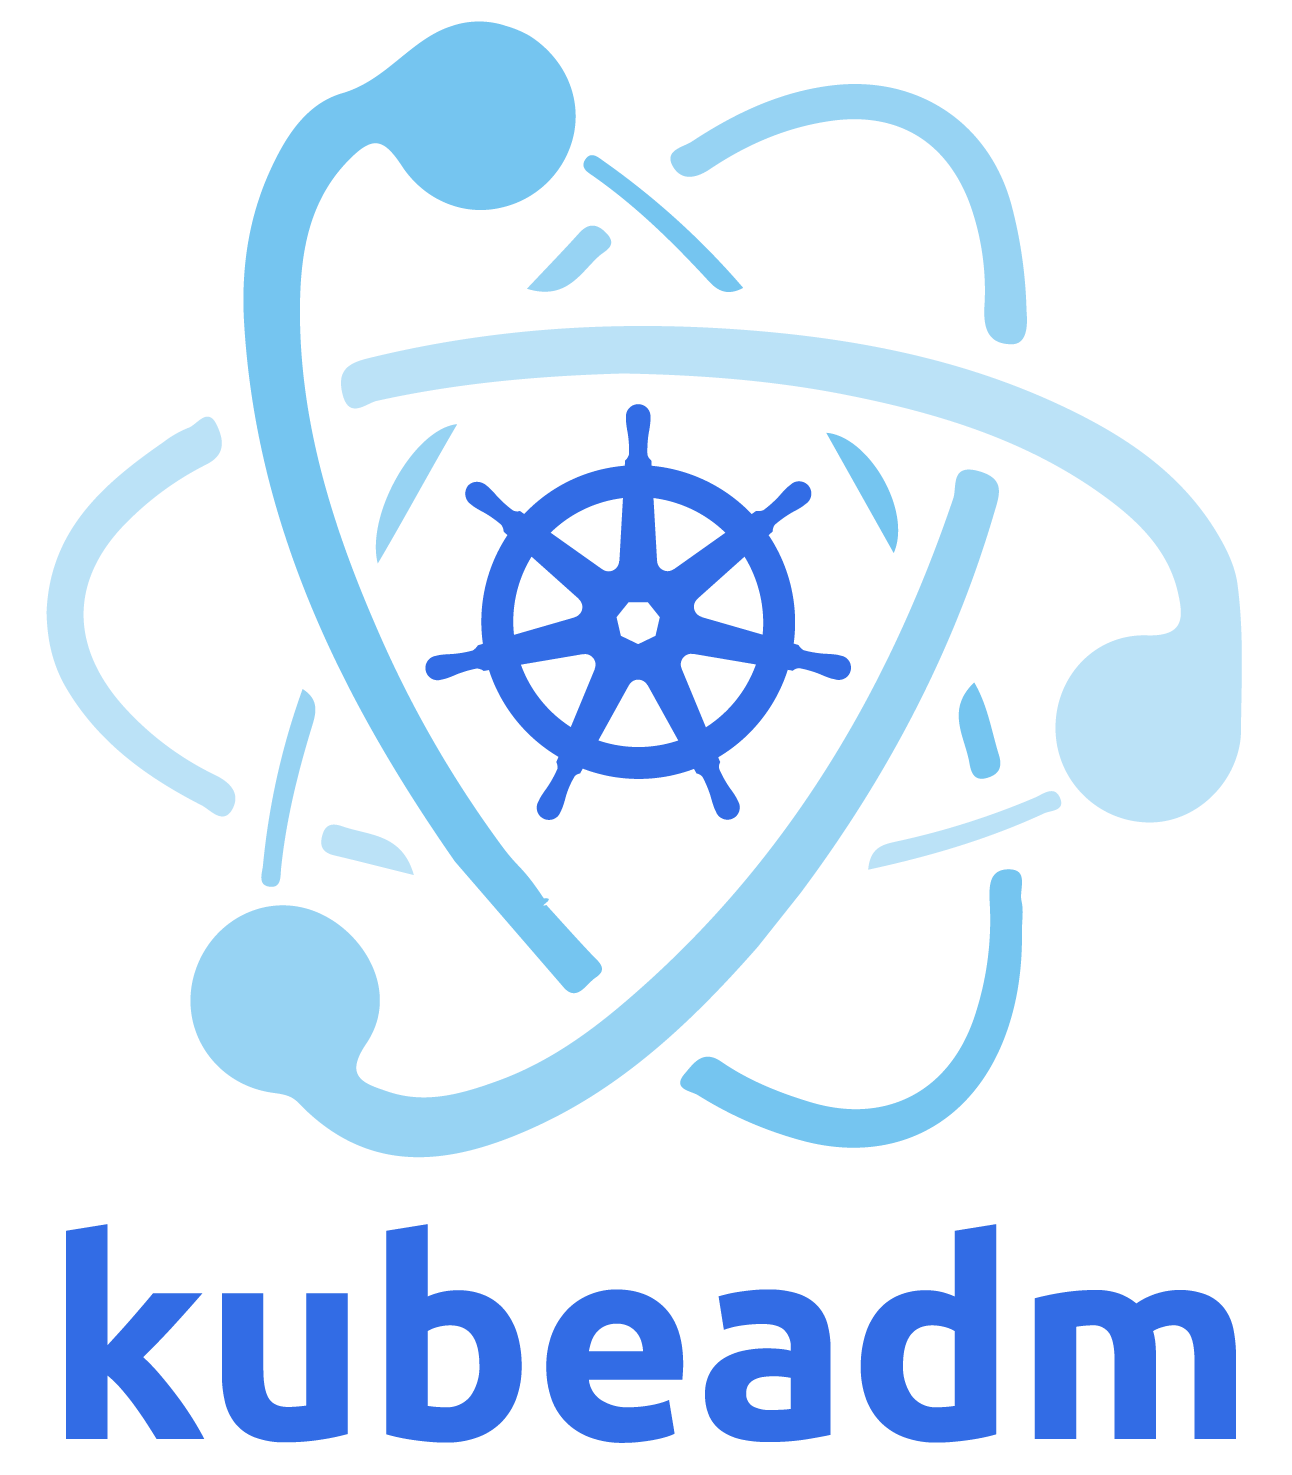 Overview of kubeadm - Kubernetes